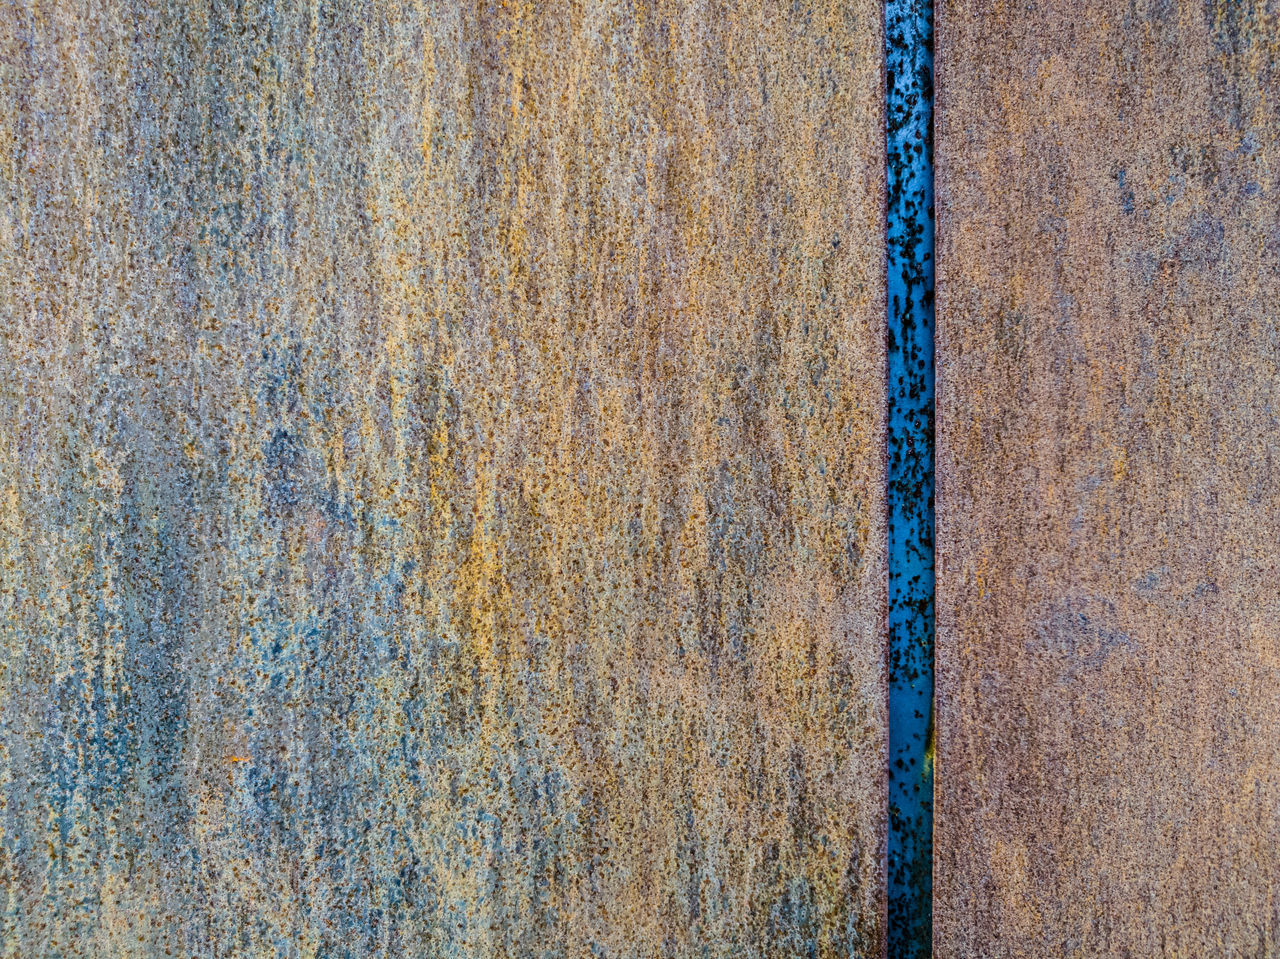 backgrounds, full frame, pattern, textured, close-up, no people, day, weathered, blue, outdoors, architecture